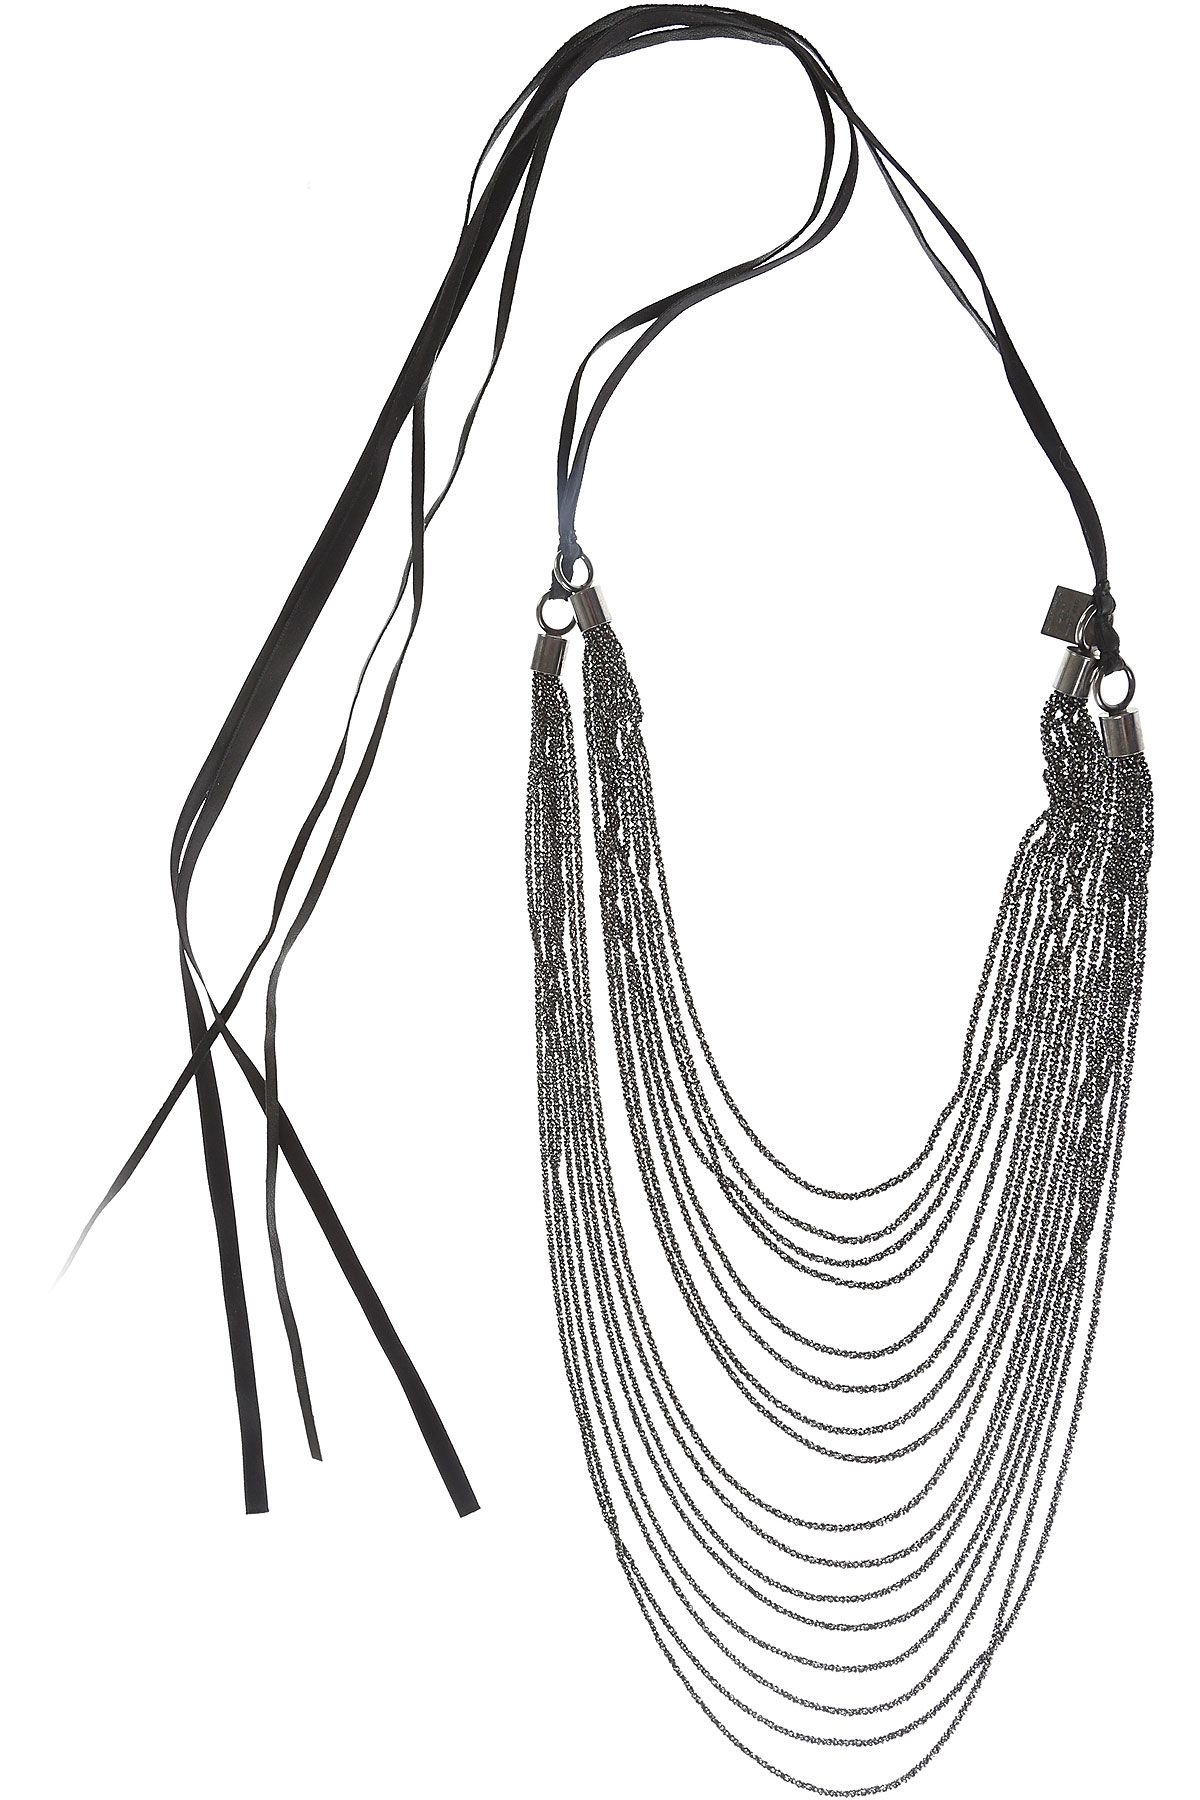 Image of Goti Necklaces, Black, Silver, 2017